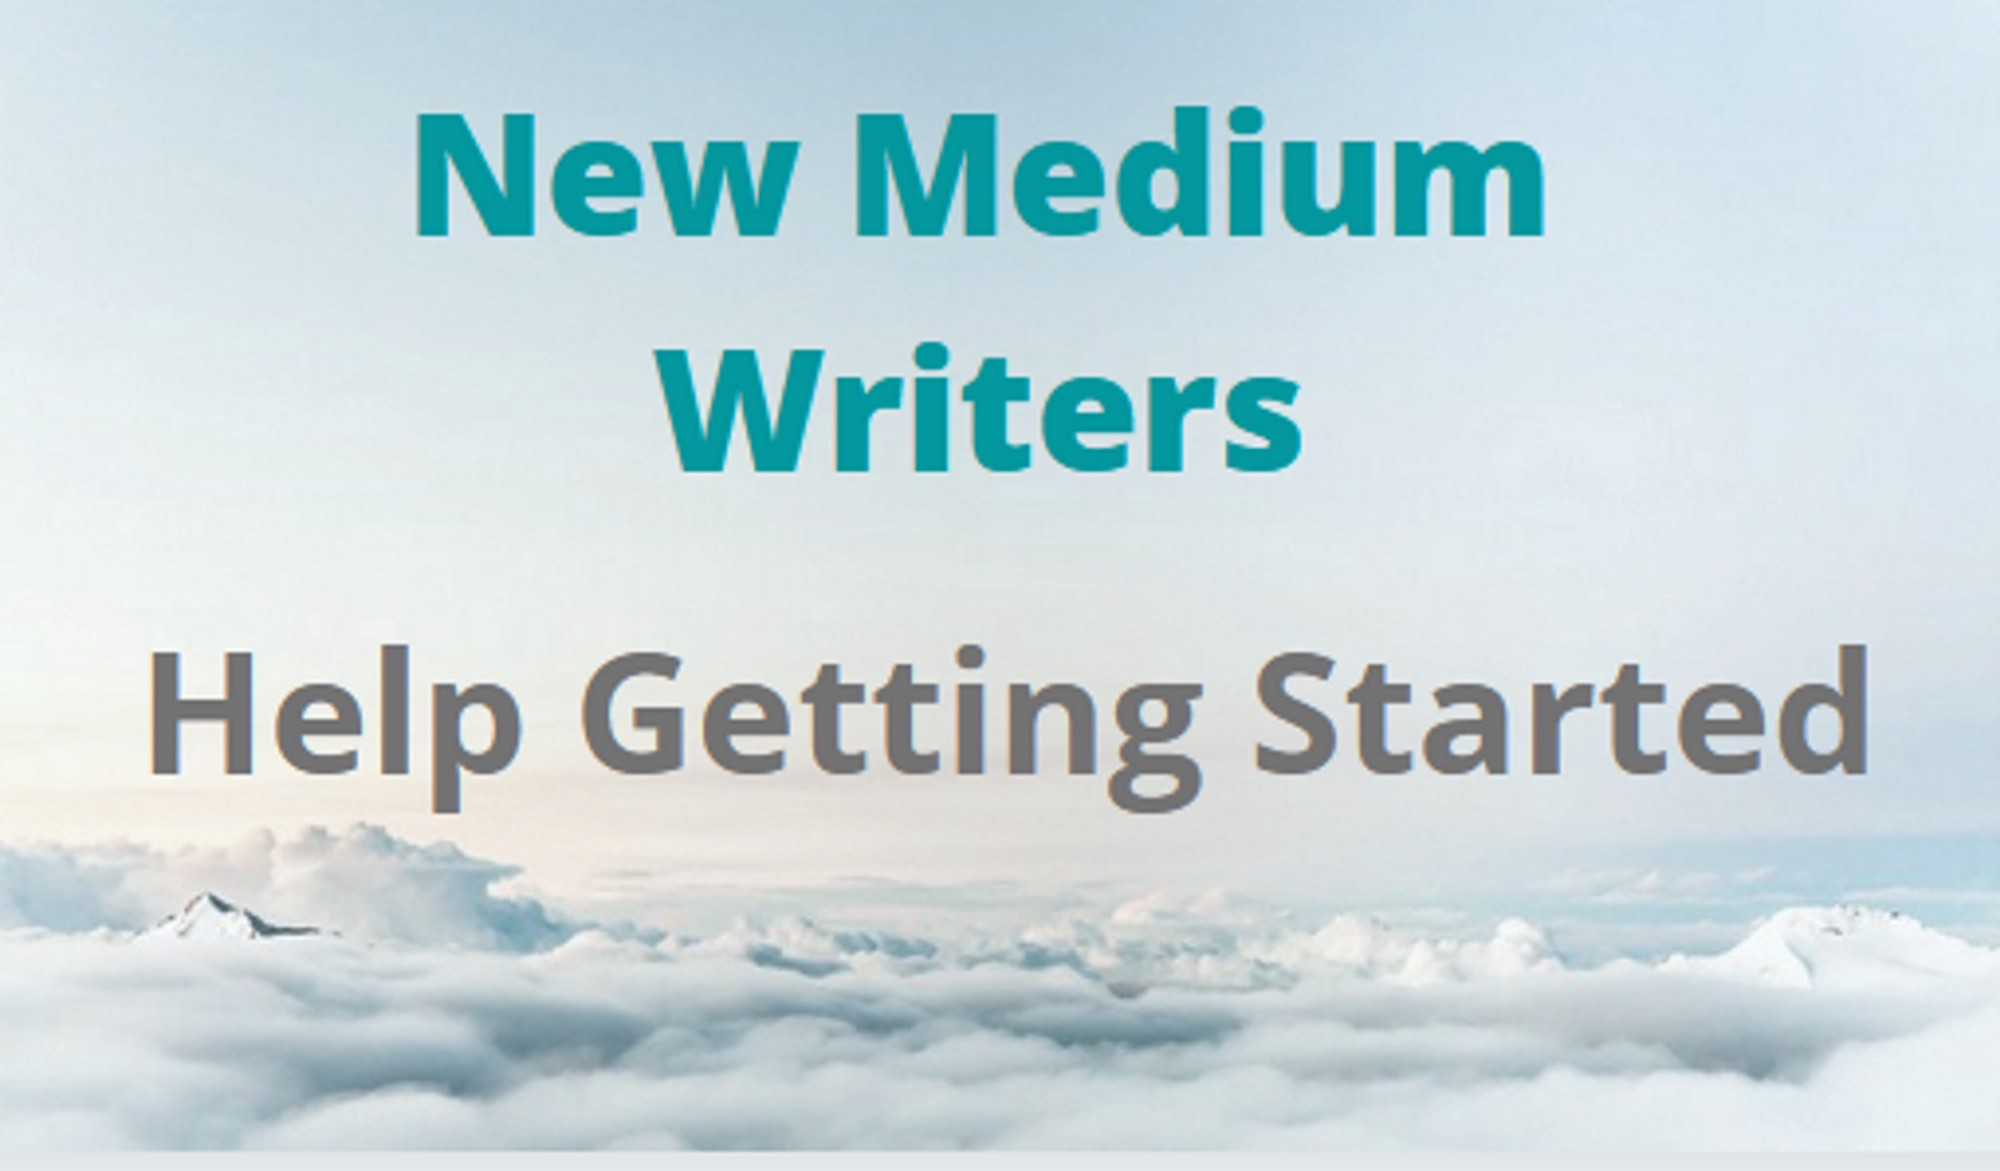 Help new medium writers getting started label